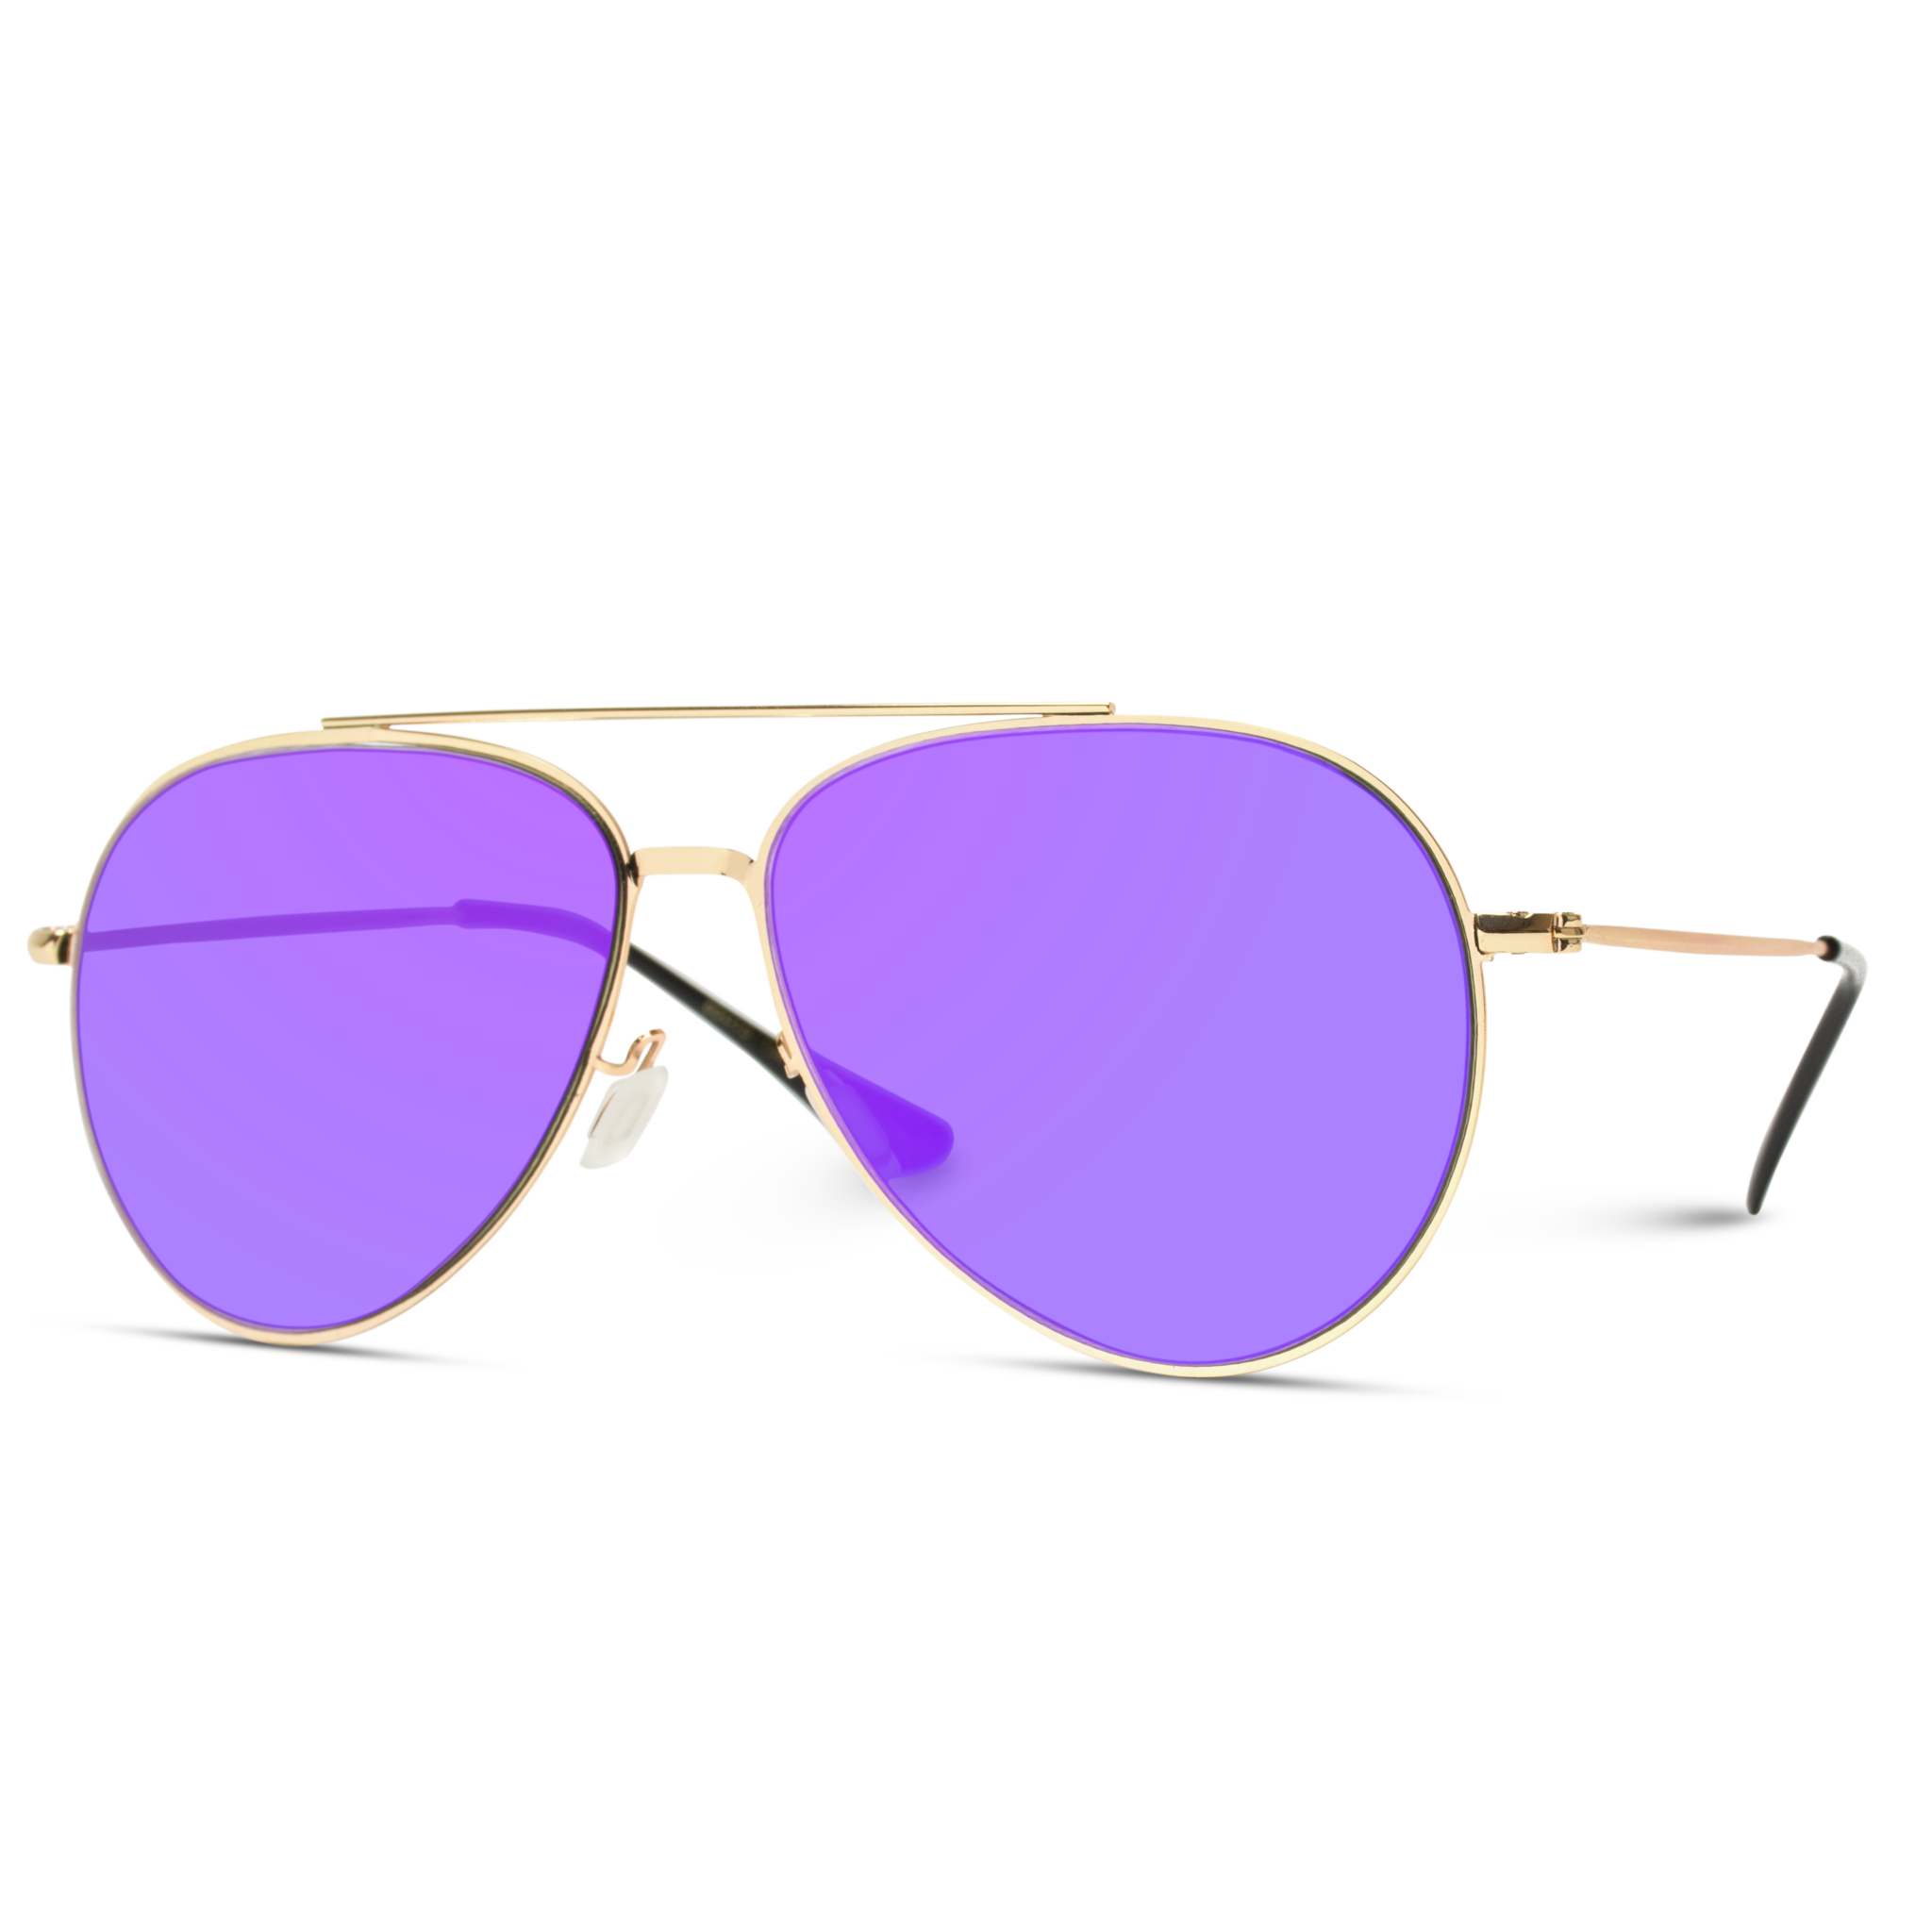 11c762f24c3d Trendy Classic Aviator Sunglasses. Elegant black aviators, pilot black  sunglasses.The Jessie is a modern take on the iconic frame as it has an  almost flat ...